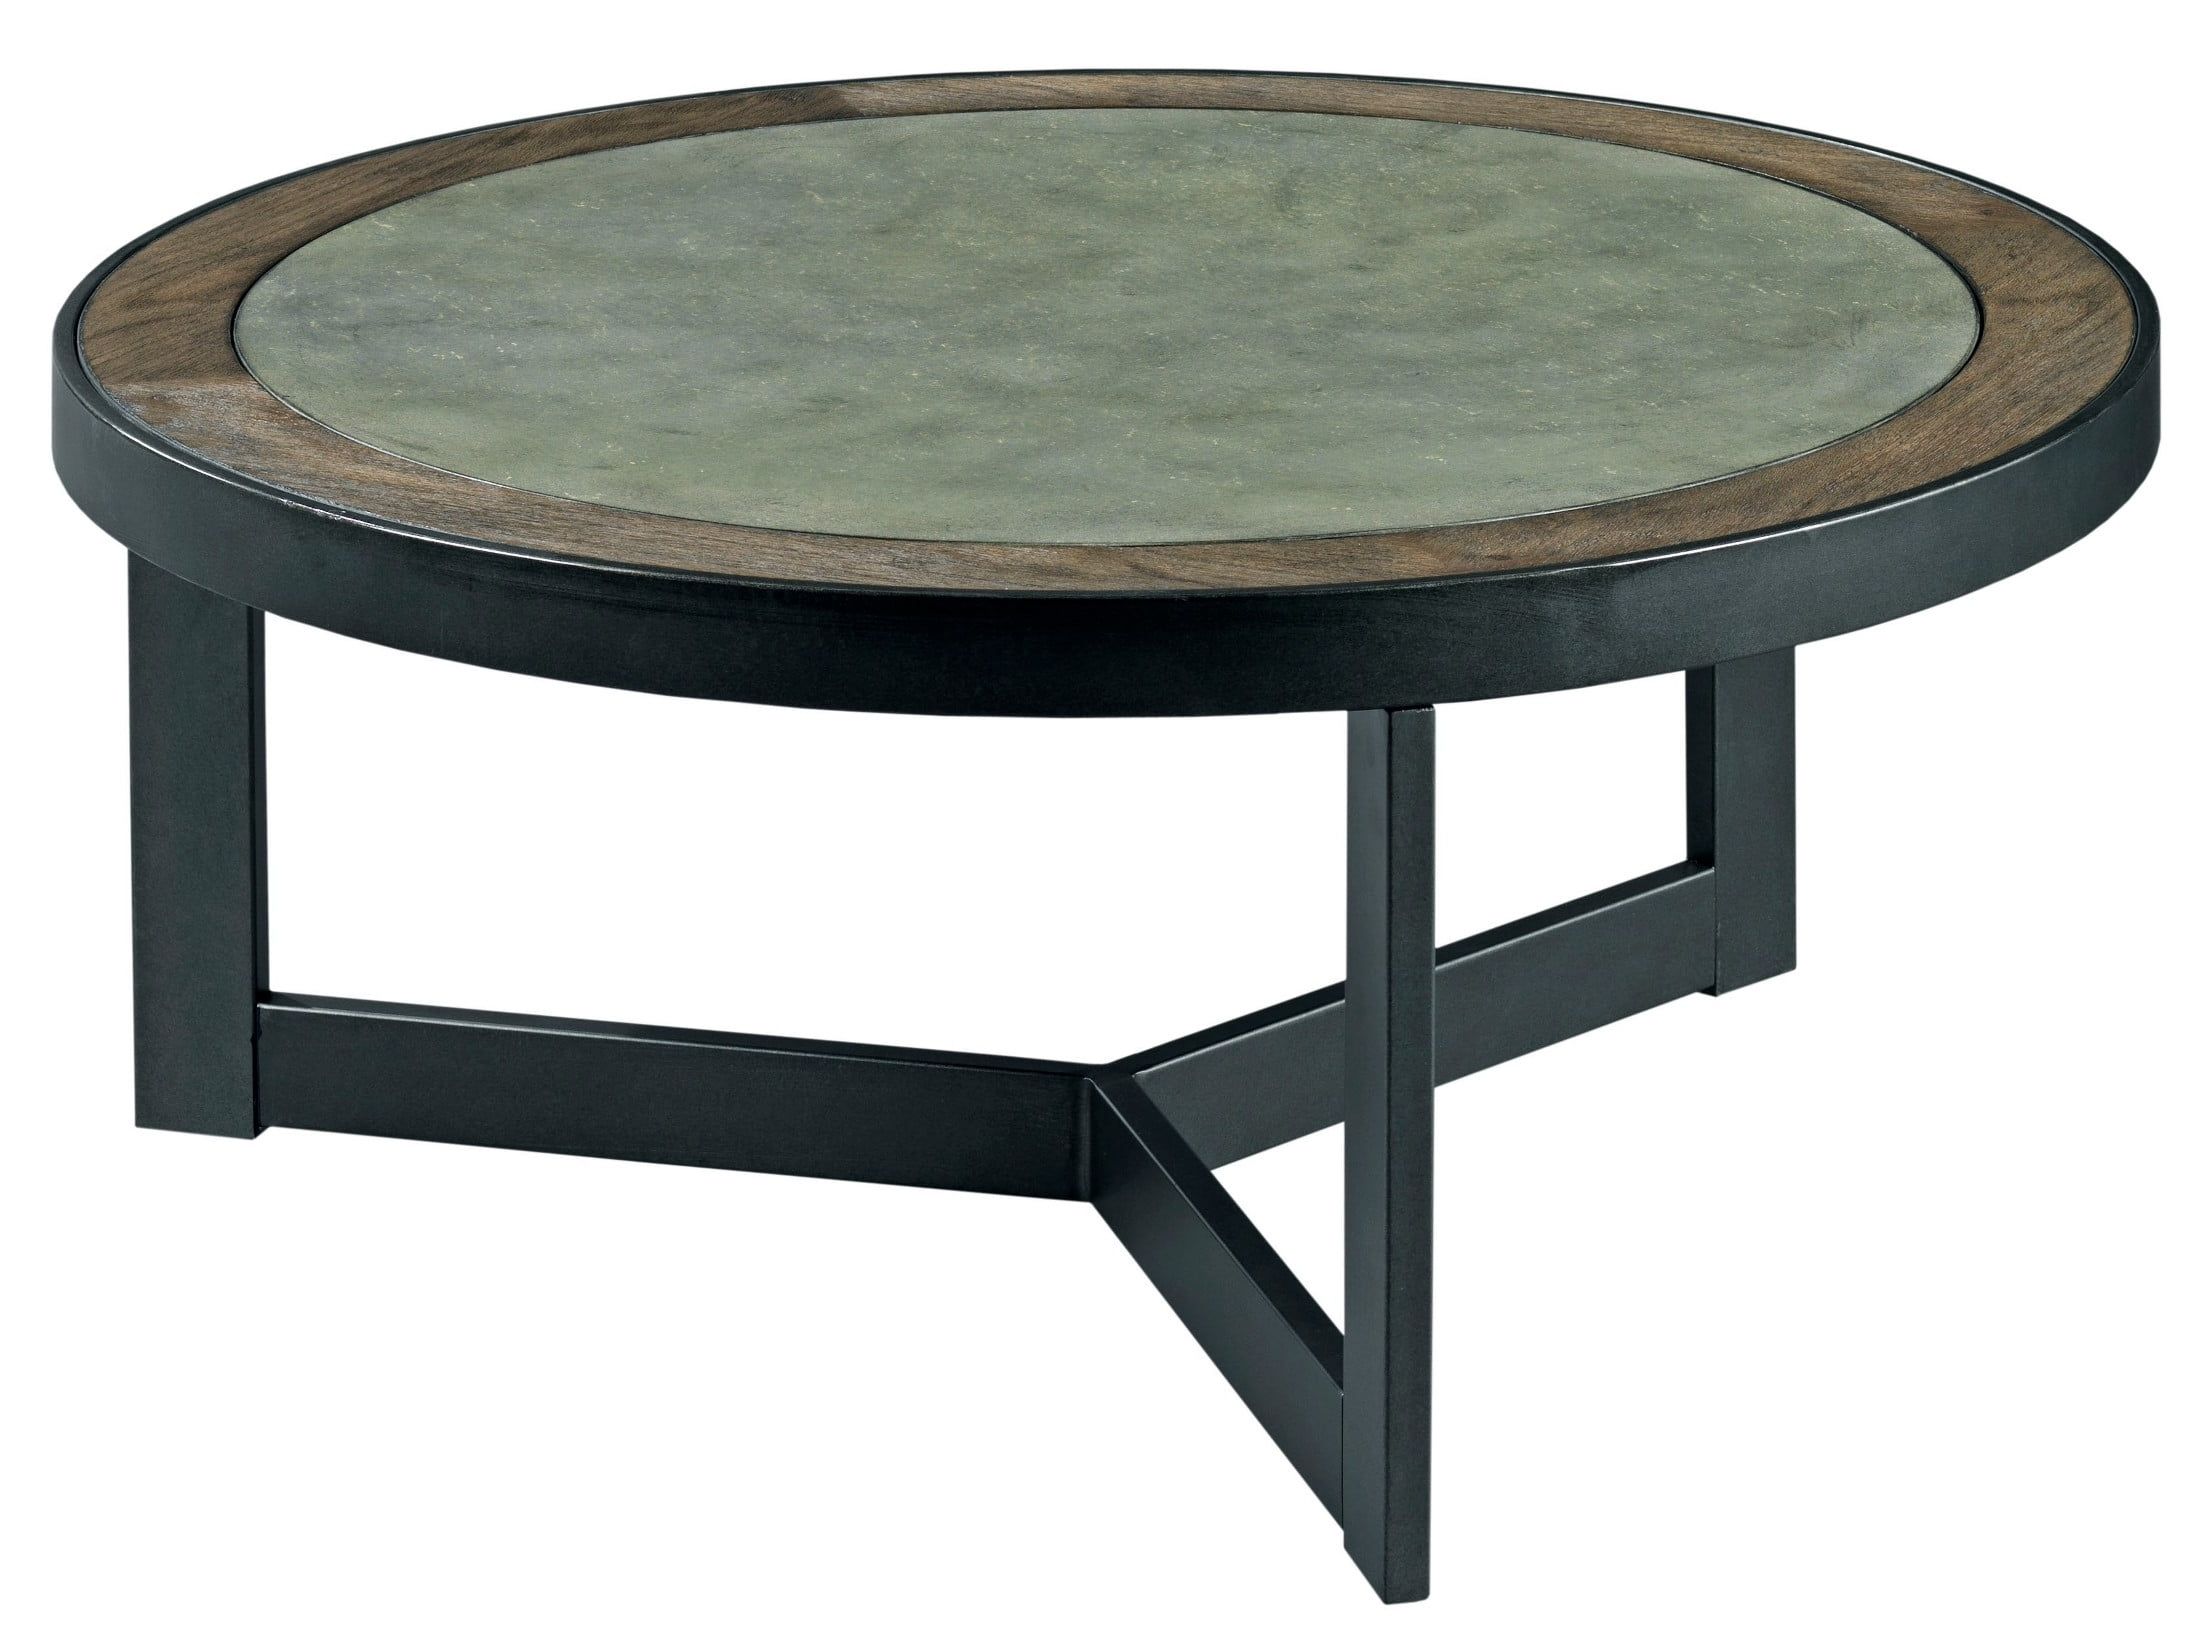 Graystone Dark Oak Round Cocktail Table From Hammary (View 11 of 20)